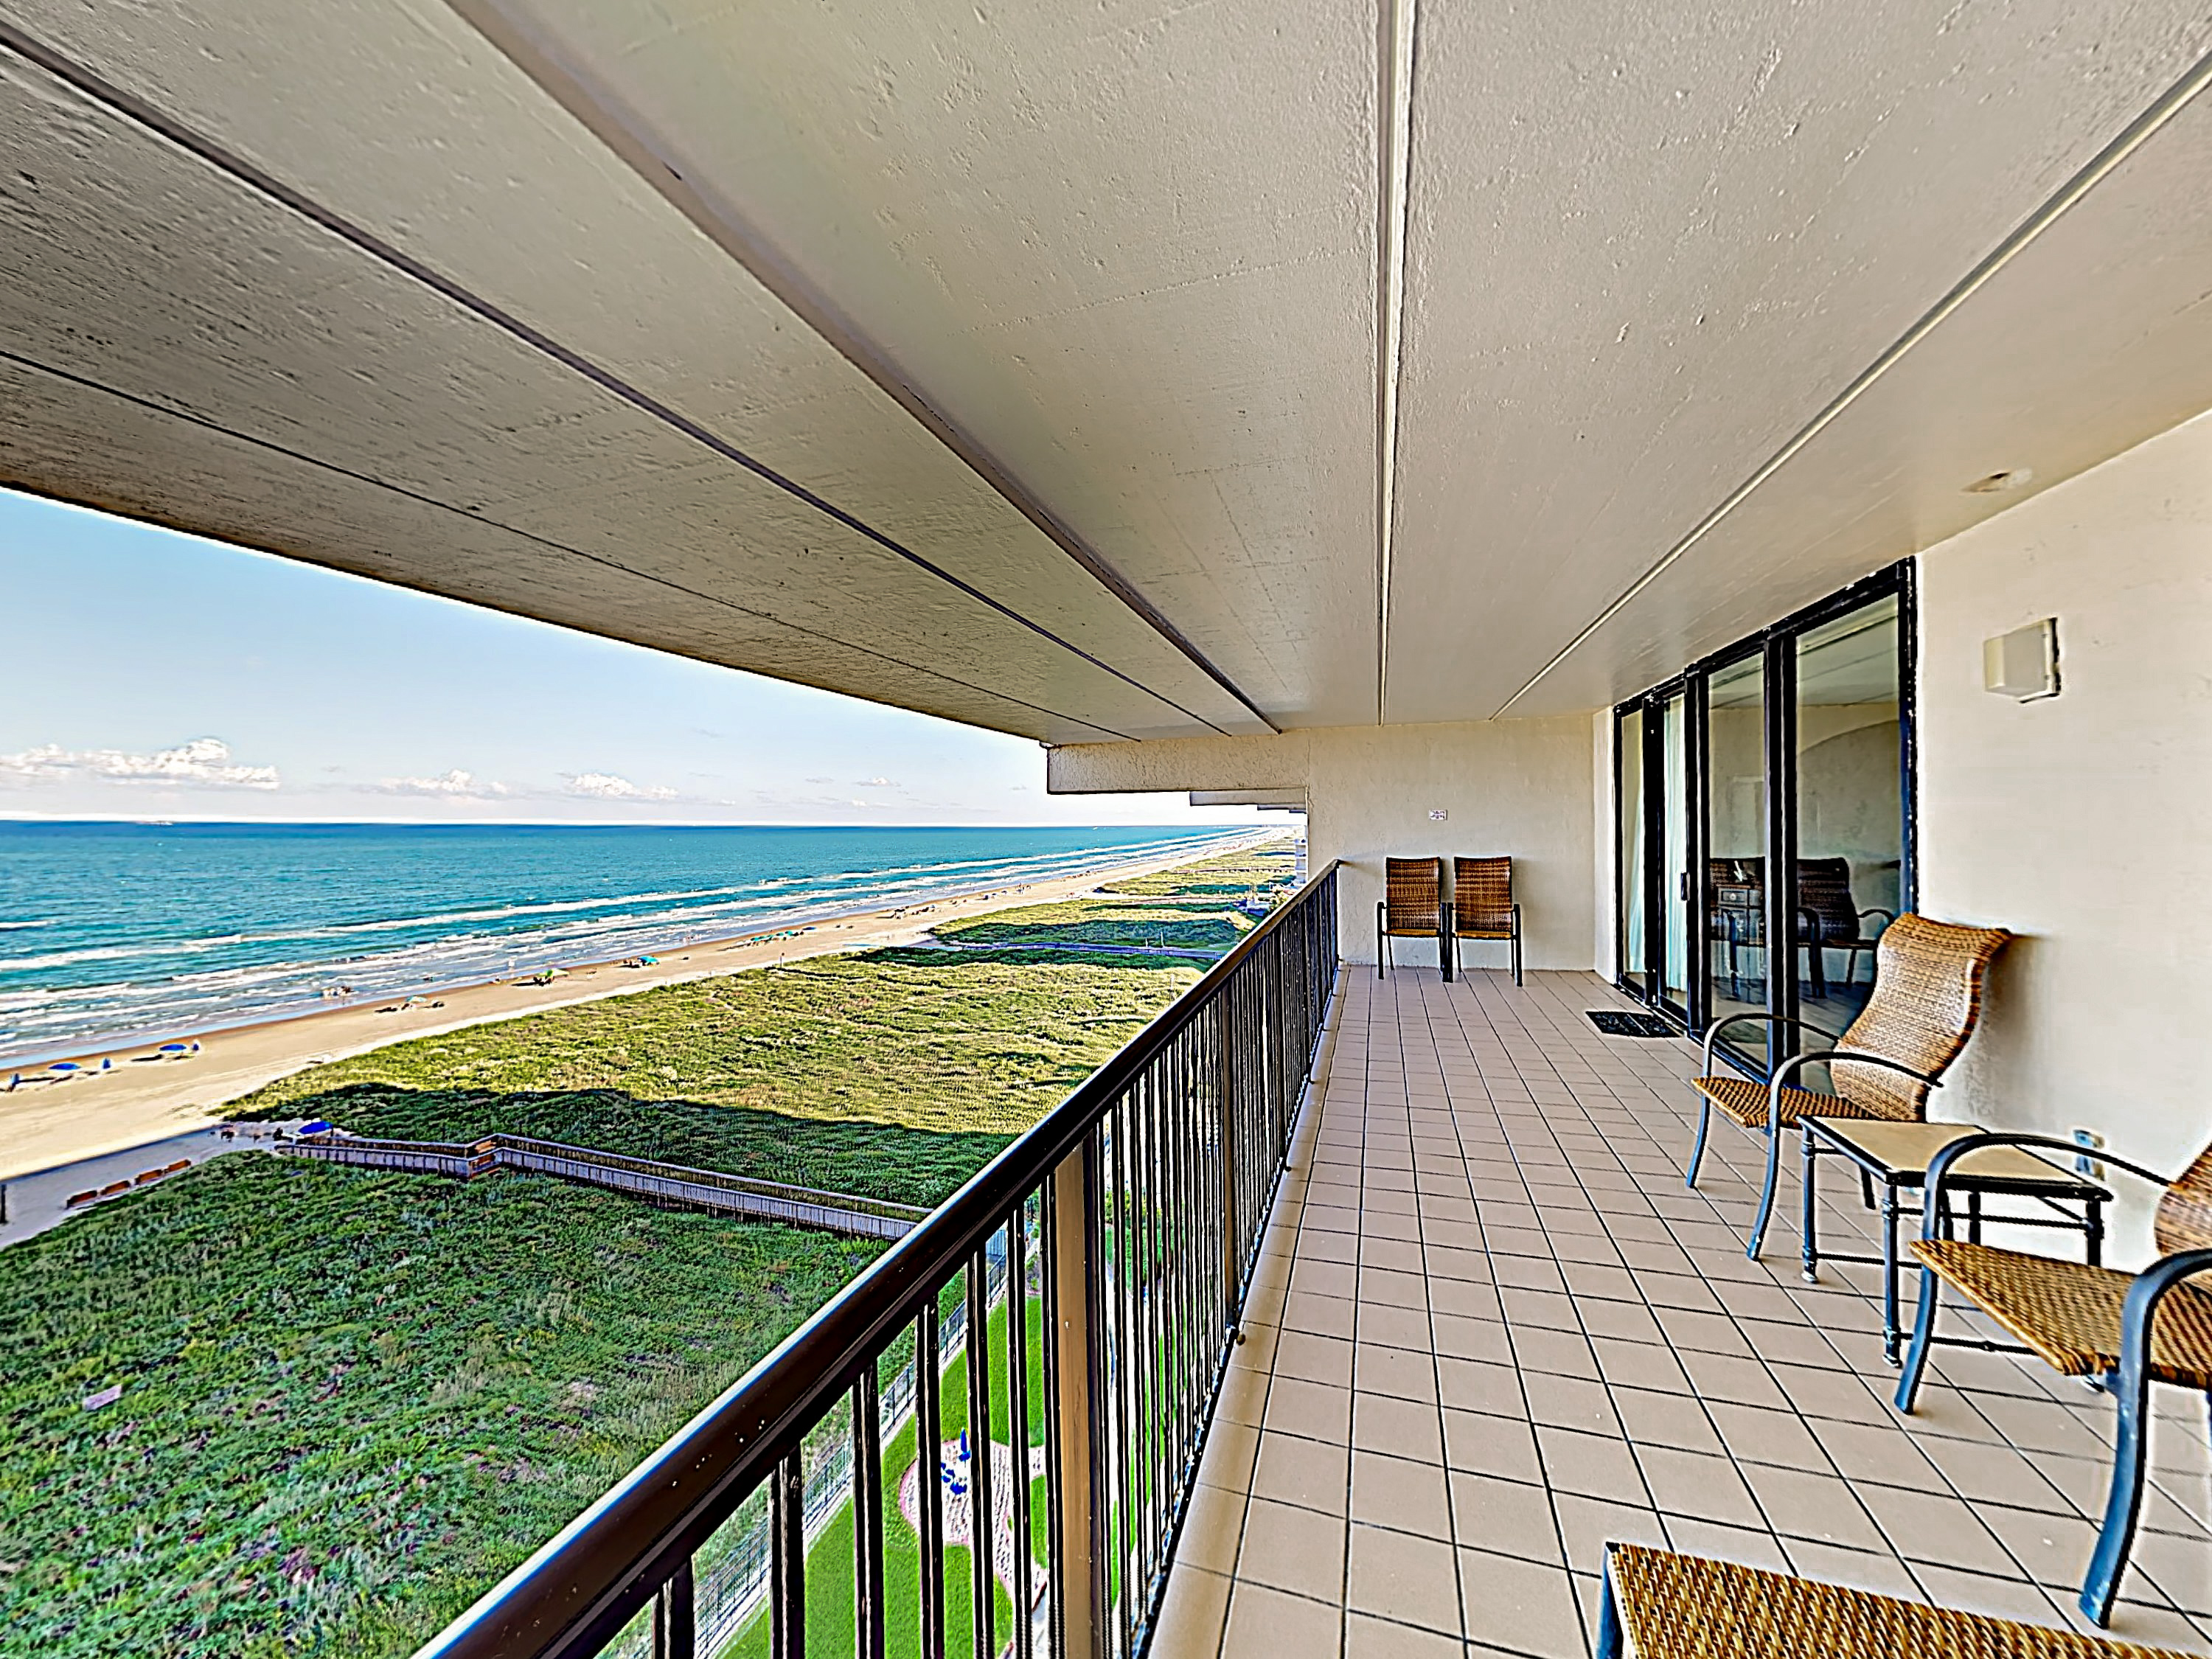 South Padre Island TX Vacation Rental Welcome! This condo